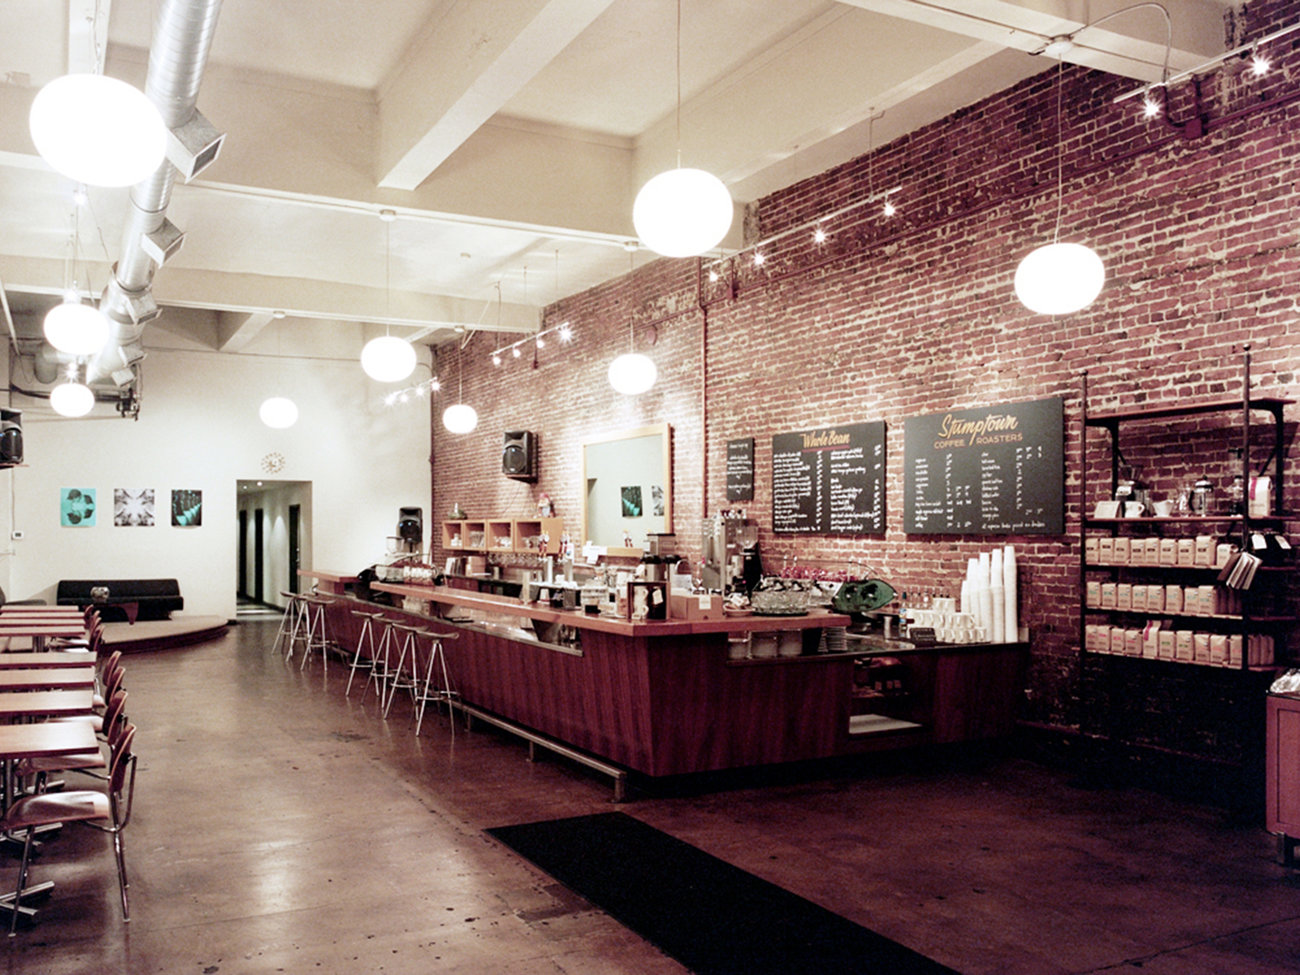 Stumptown Coffee Roasters Shop in Portland